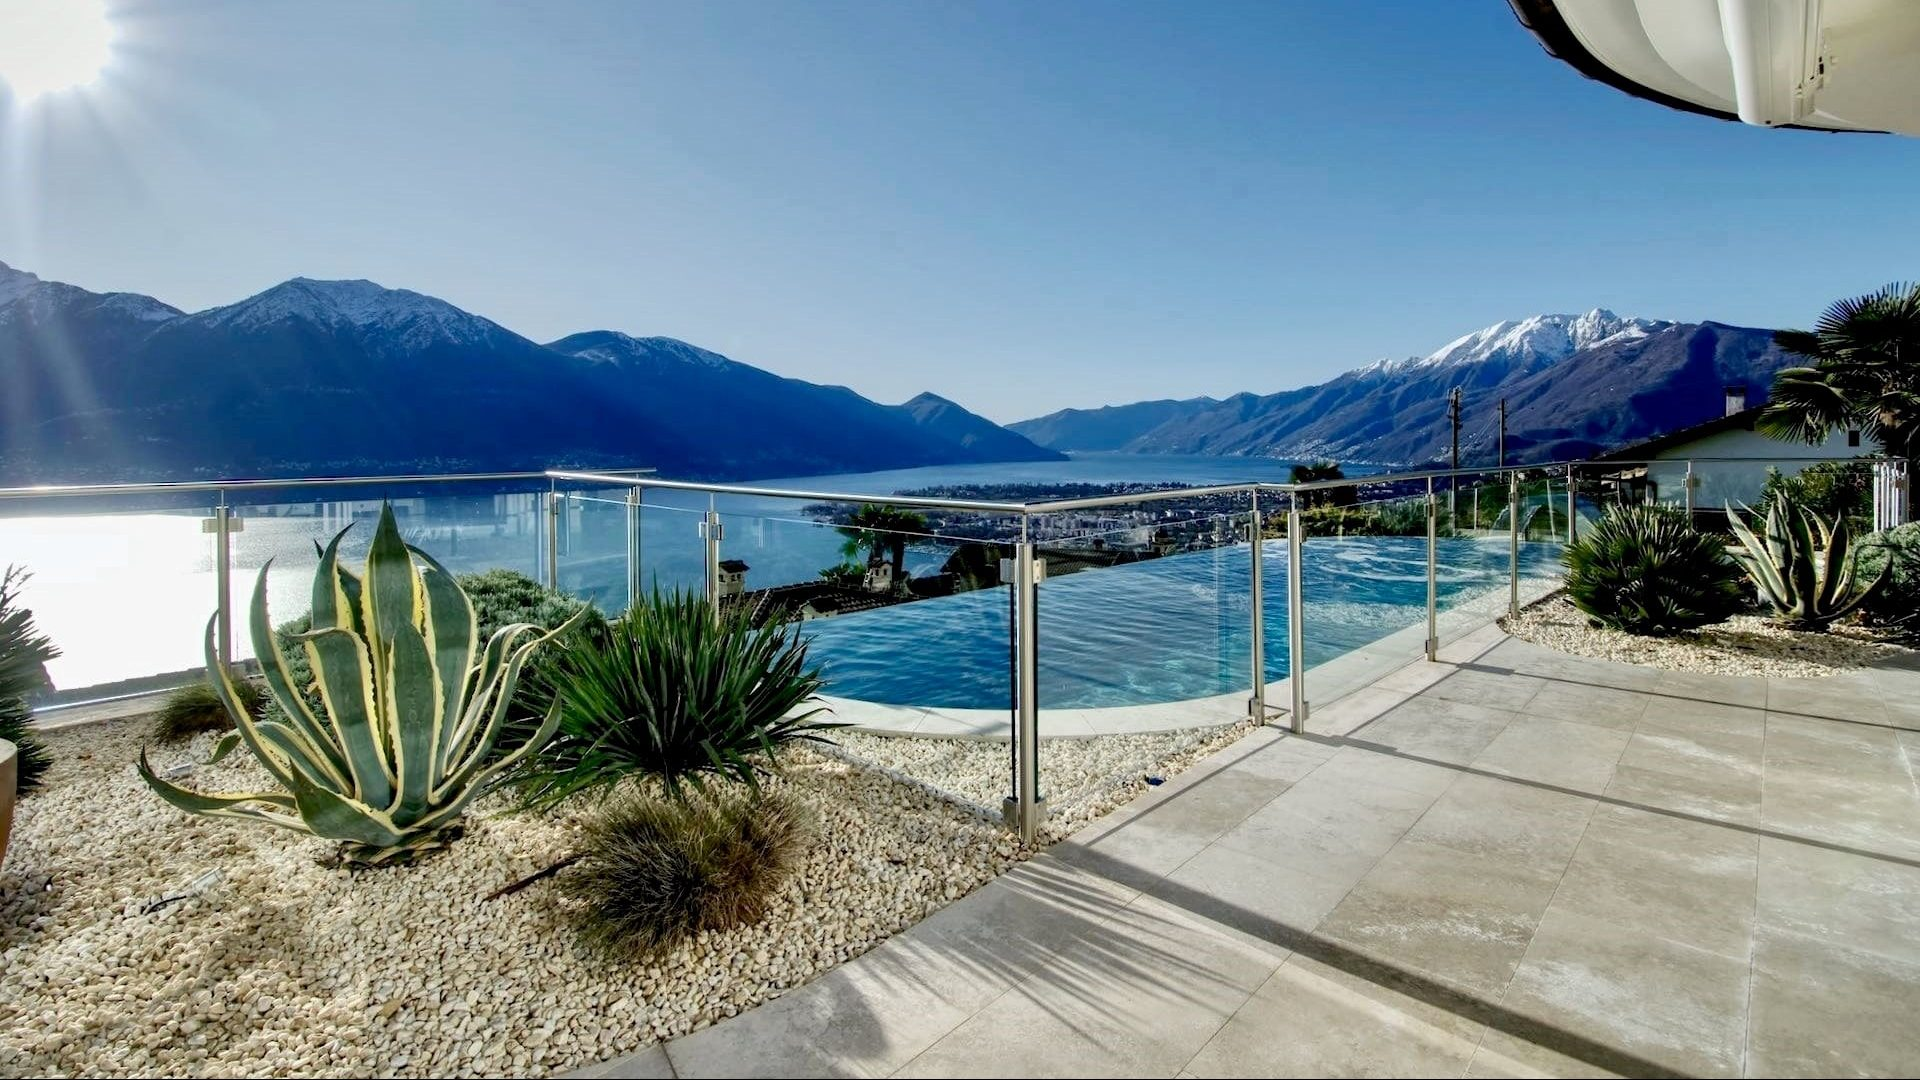 Villa surrounded by the lake and the mountains